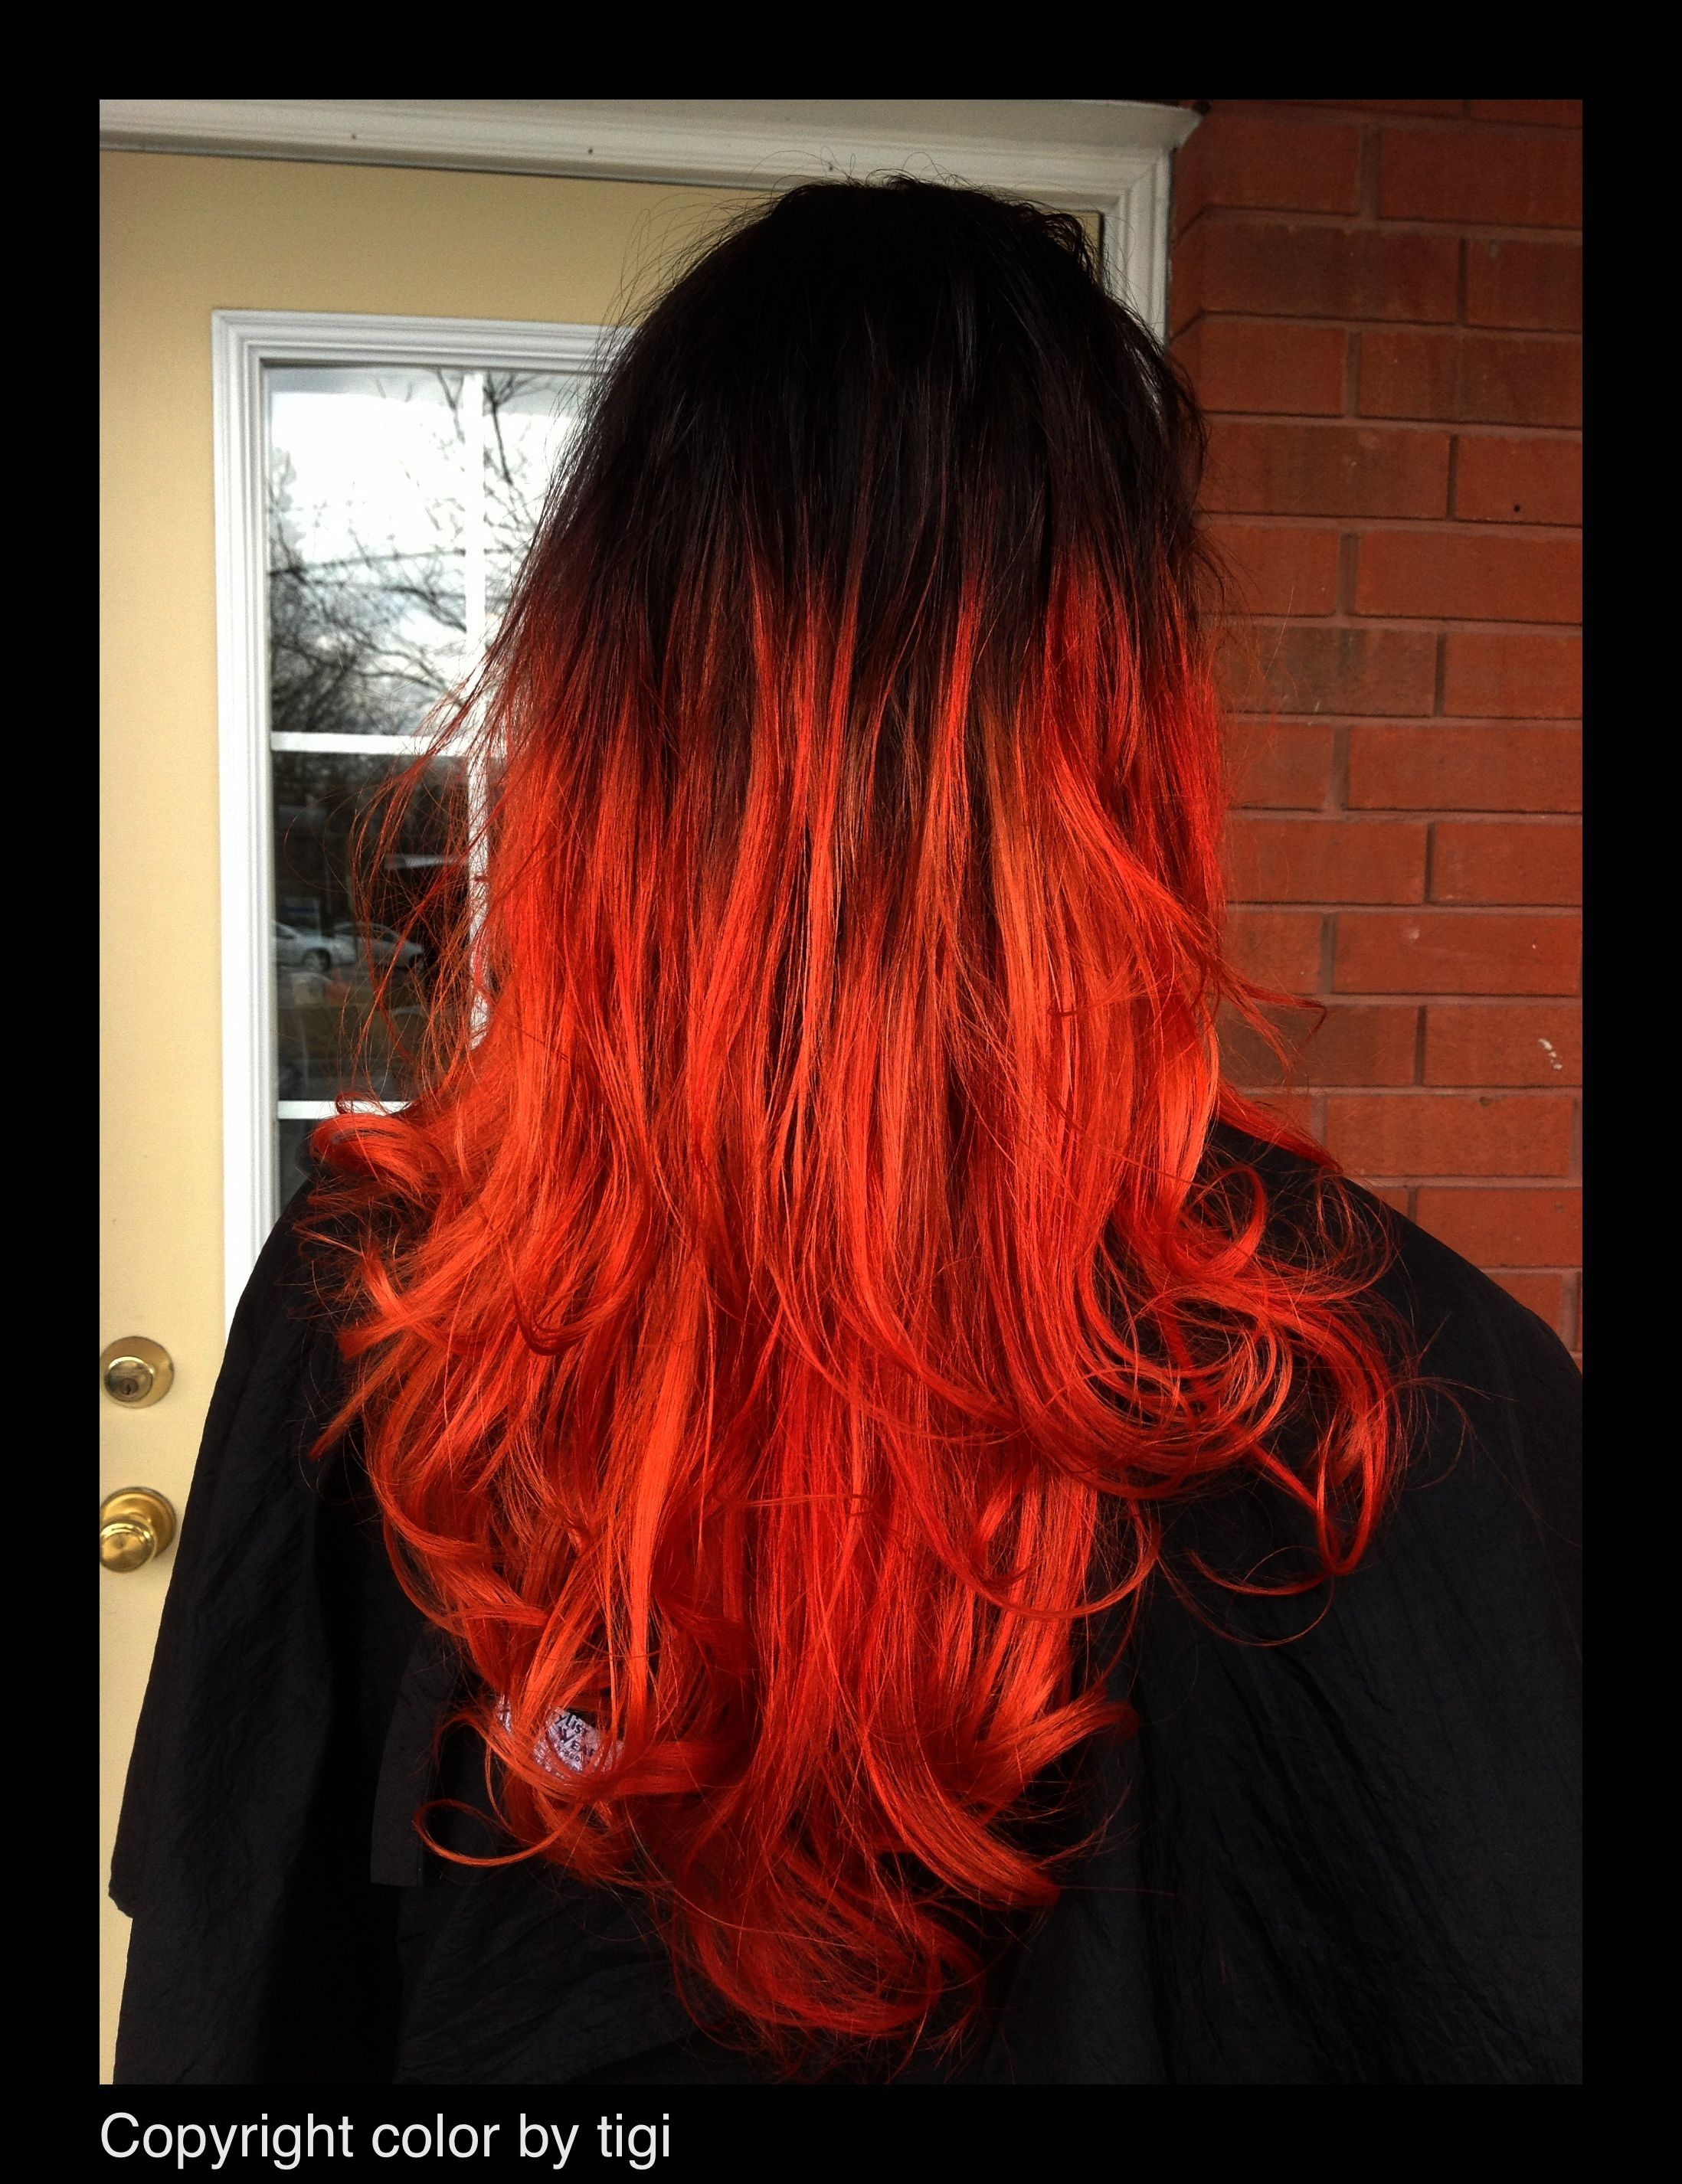 Fire Engine Red Hair Tigi Copyright Color Styled With Bumble And